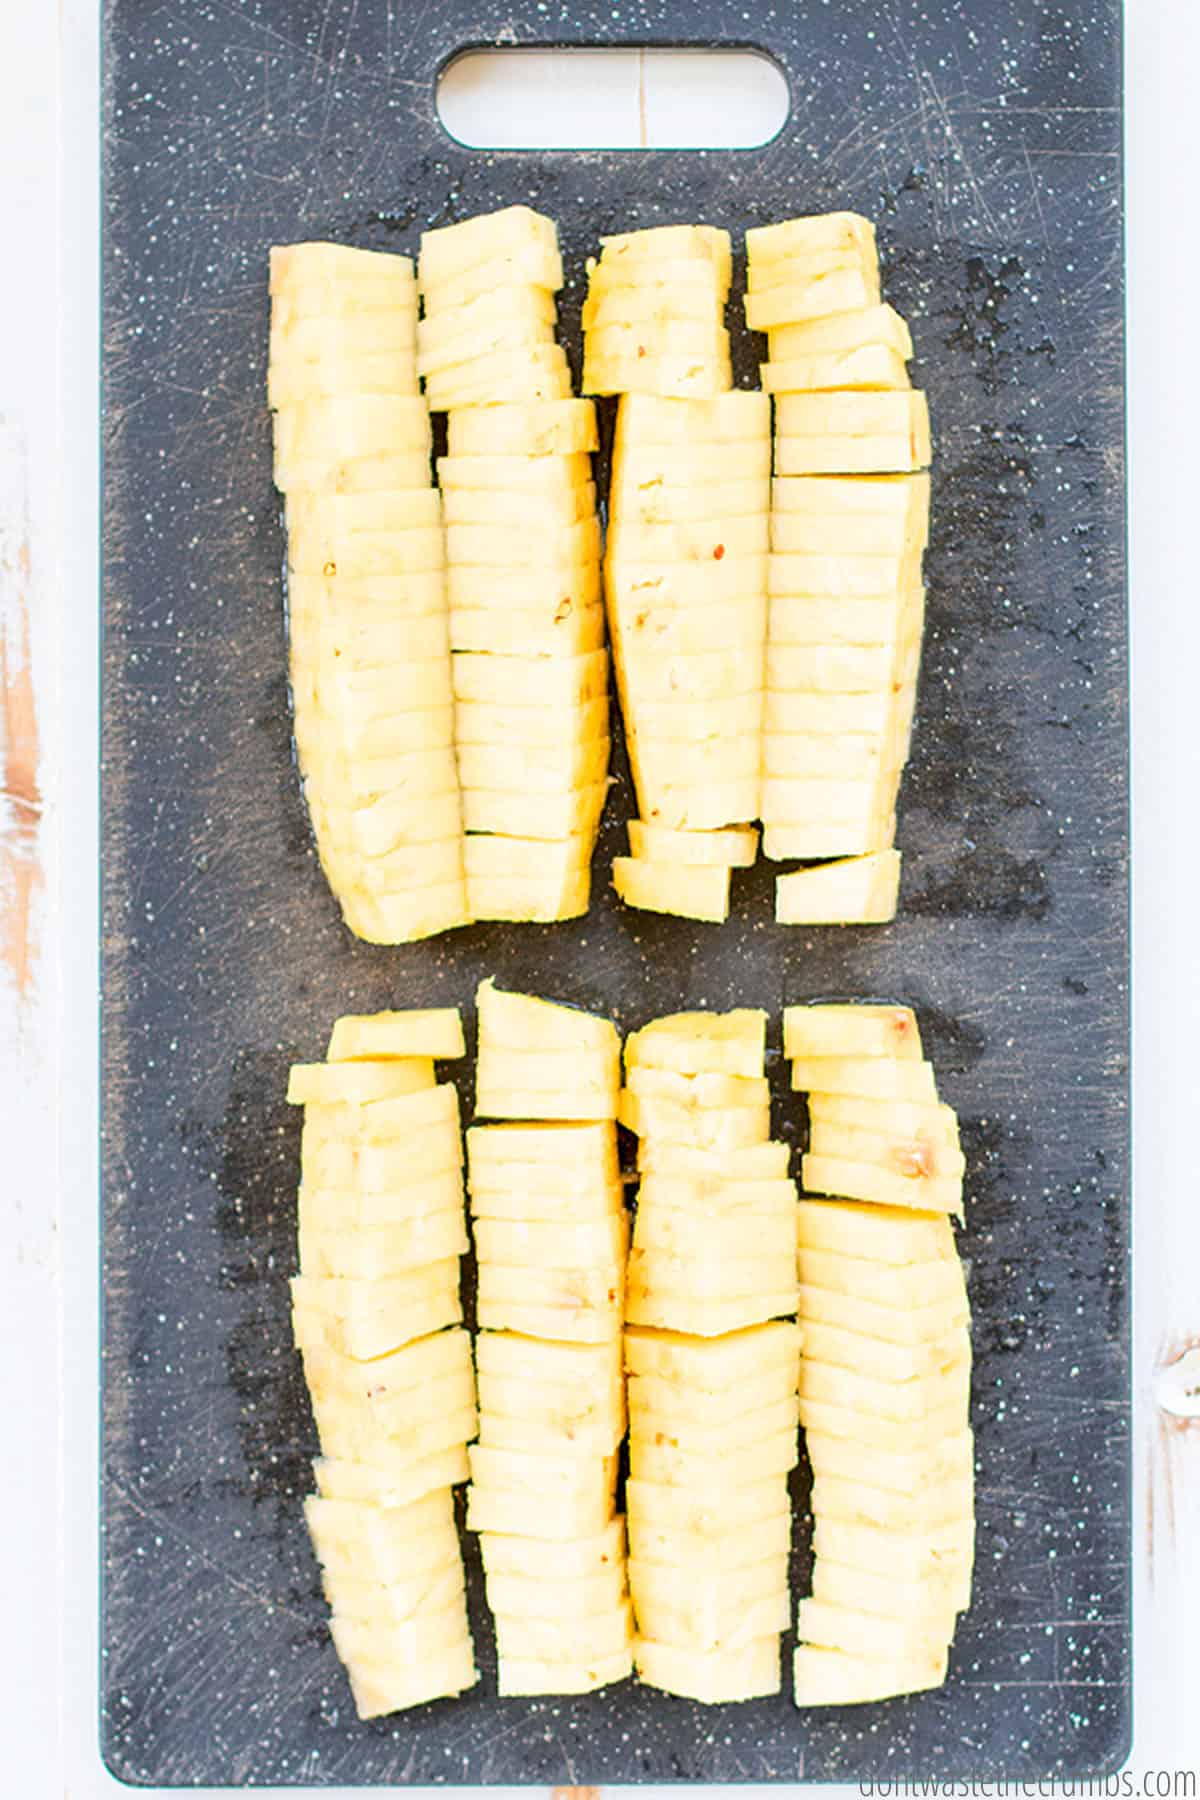 Many slices of freshly cut pineapple on a cutting board. Ready to serve and eat!